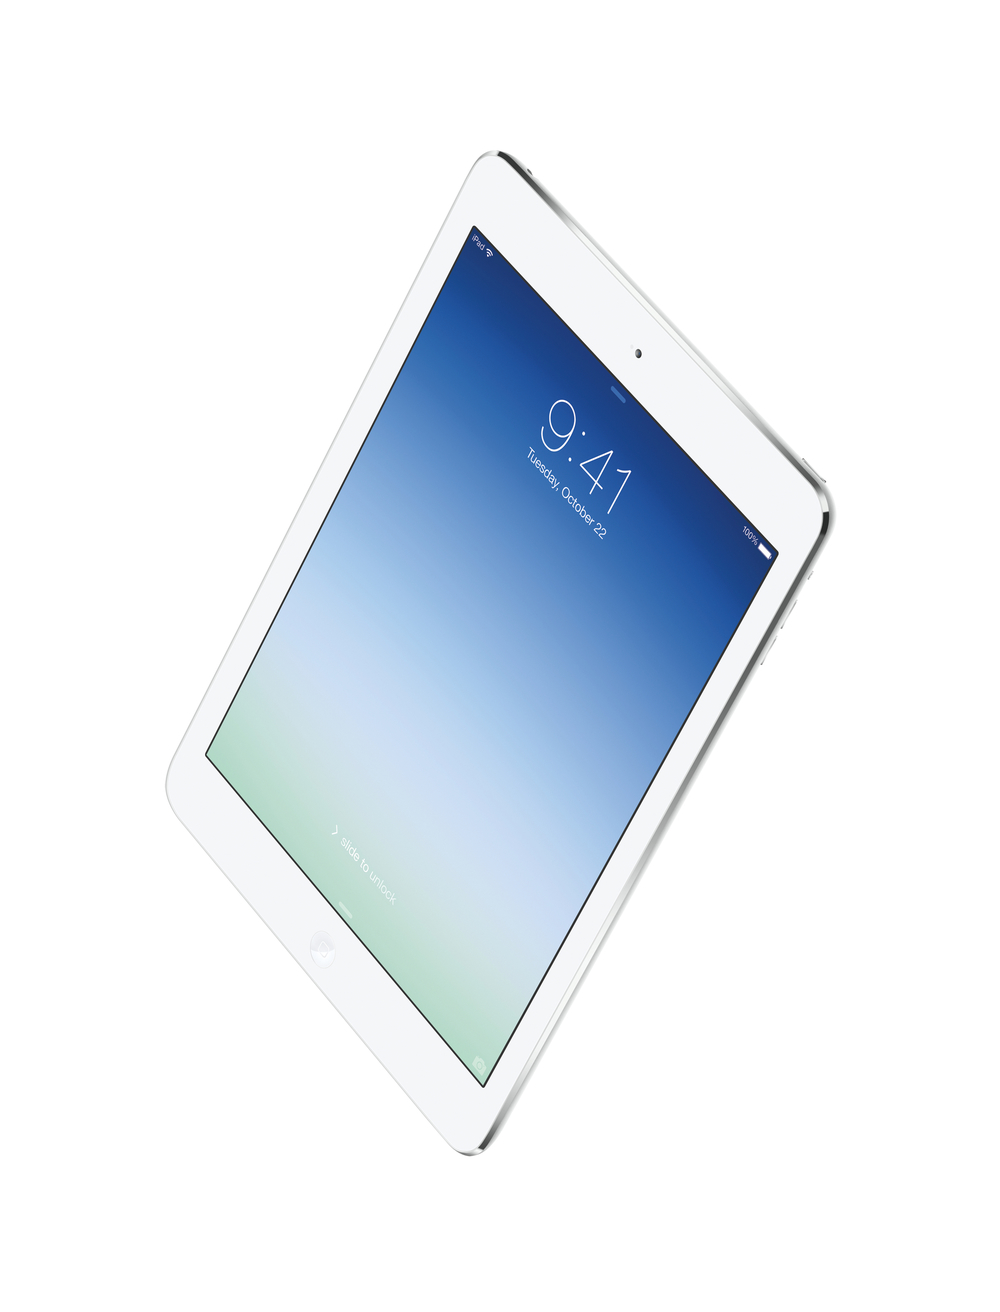 iPad Air, South Africa